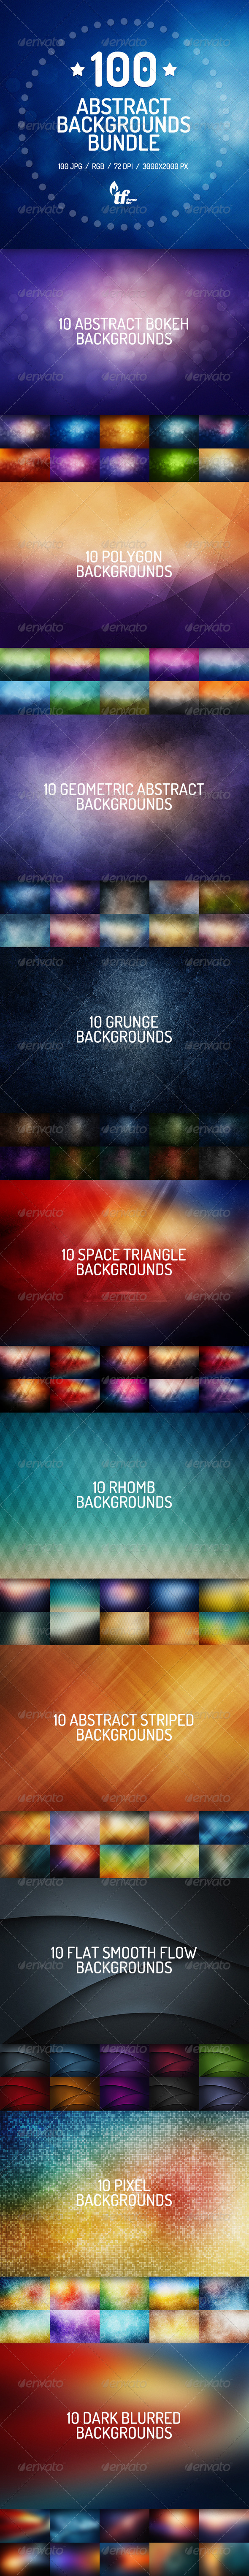 GraphicRiver 100 Abstract Backgrounds Bundle 7821118